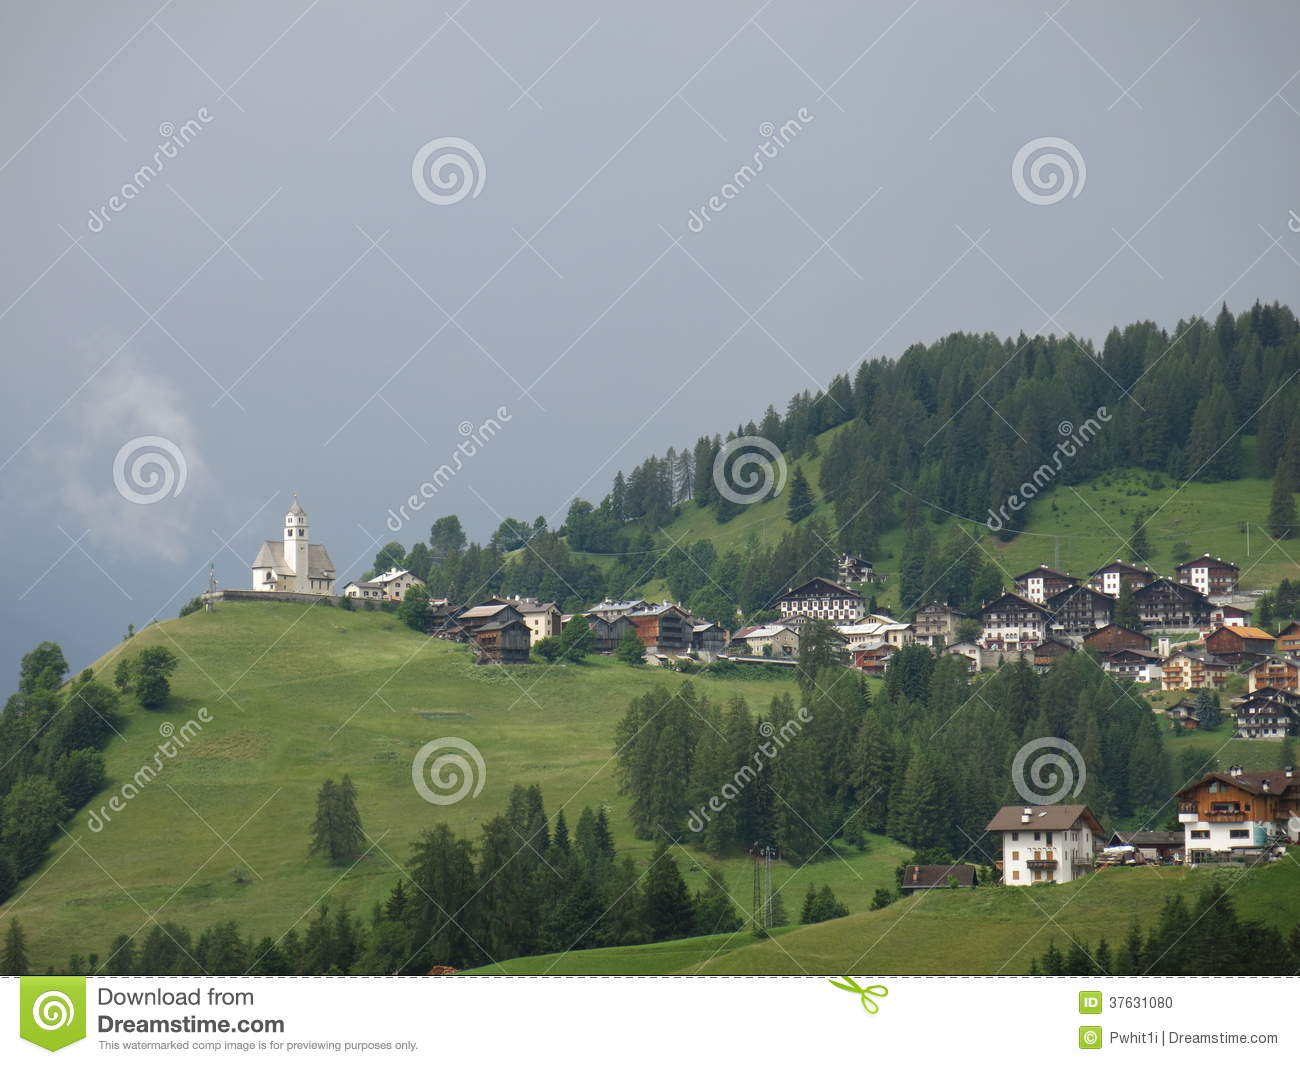 Italian Church And Village In The Foothills Of The Alps Stock.